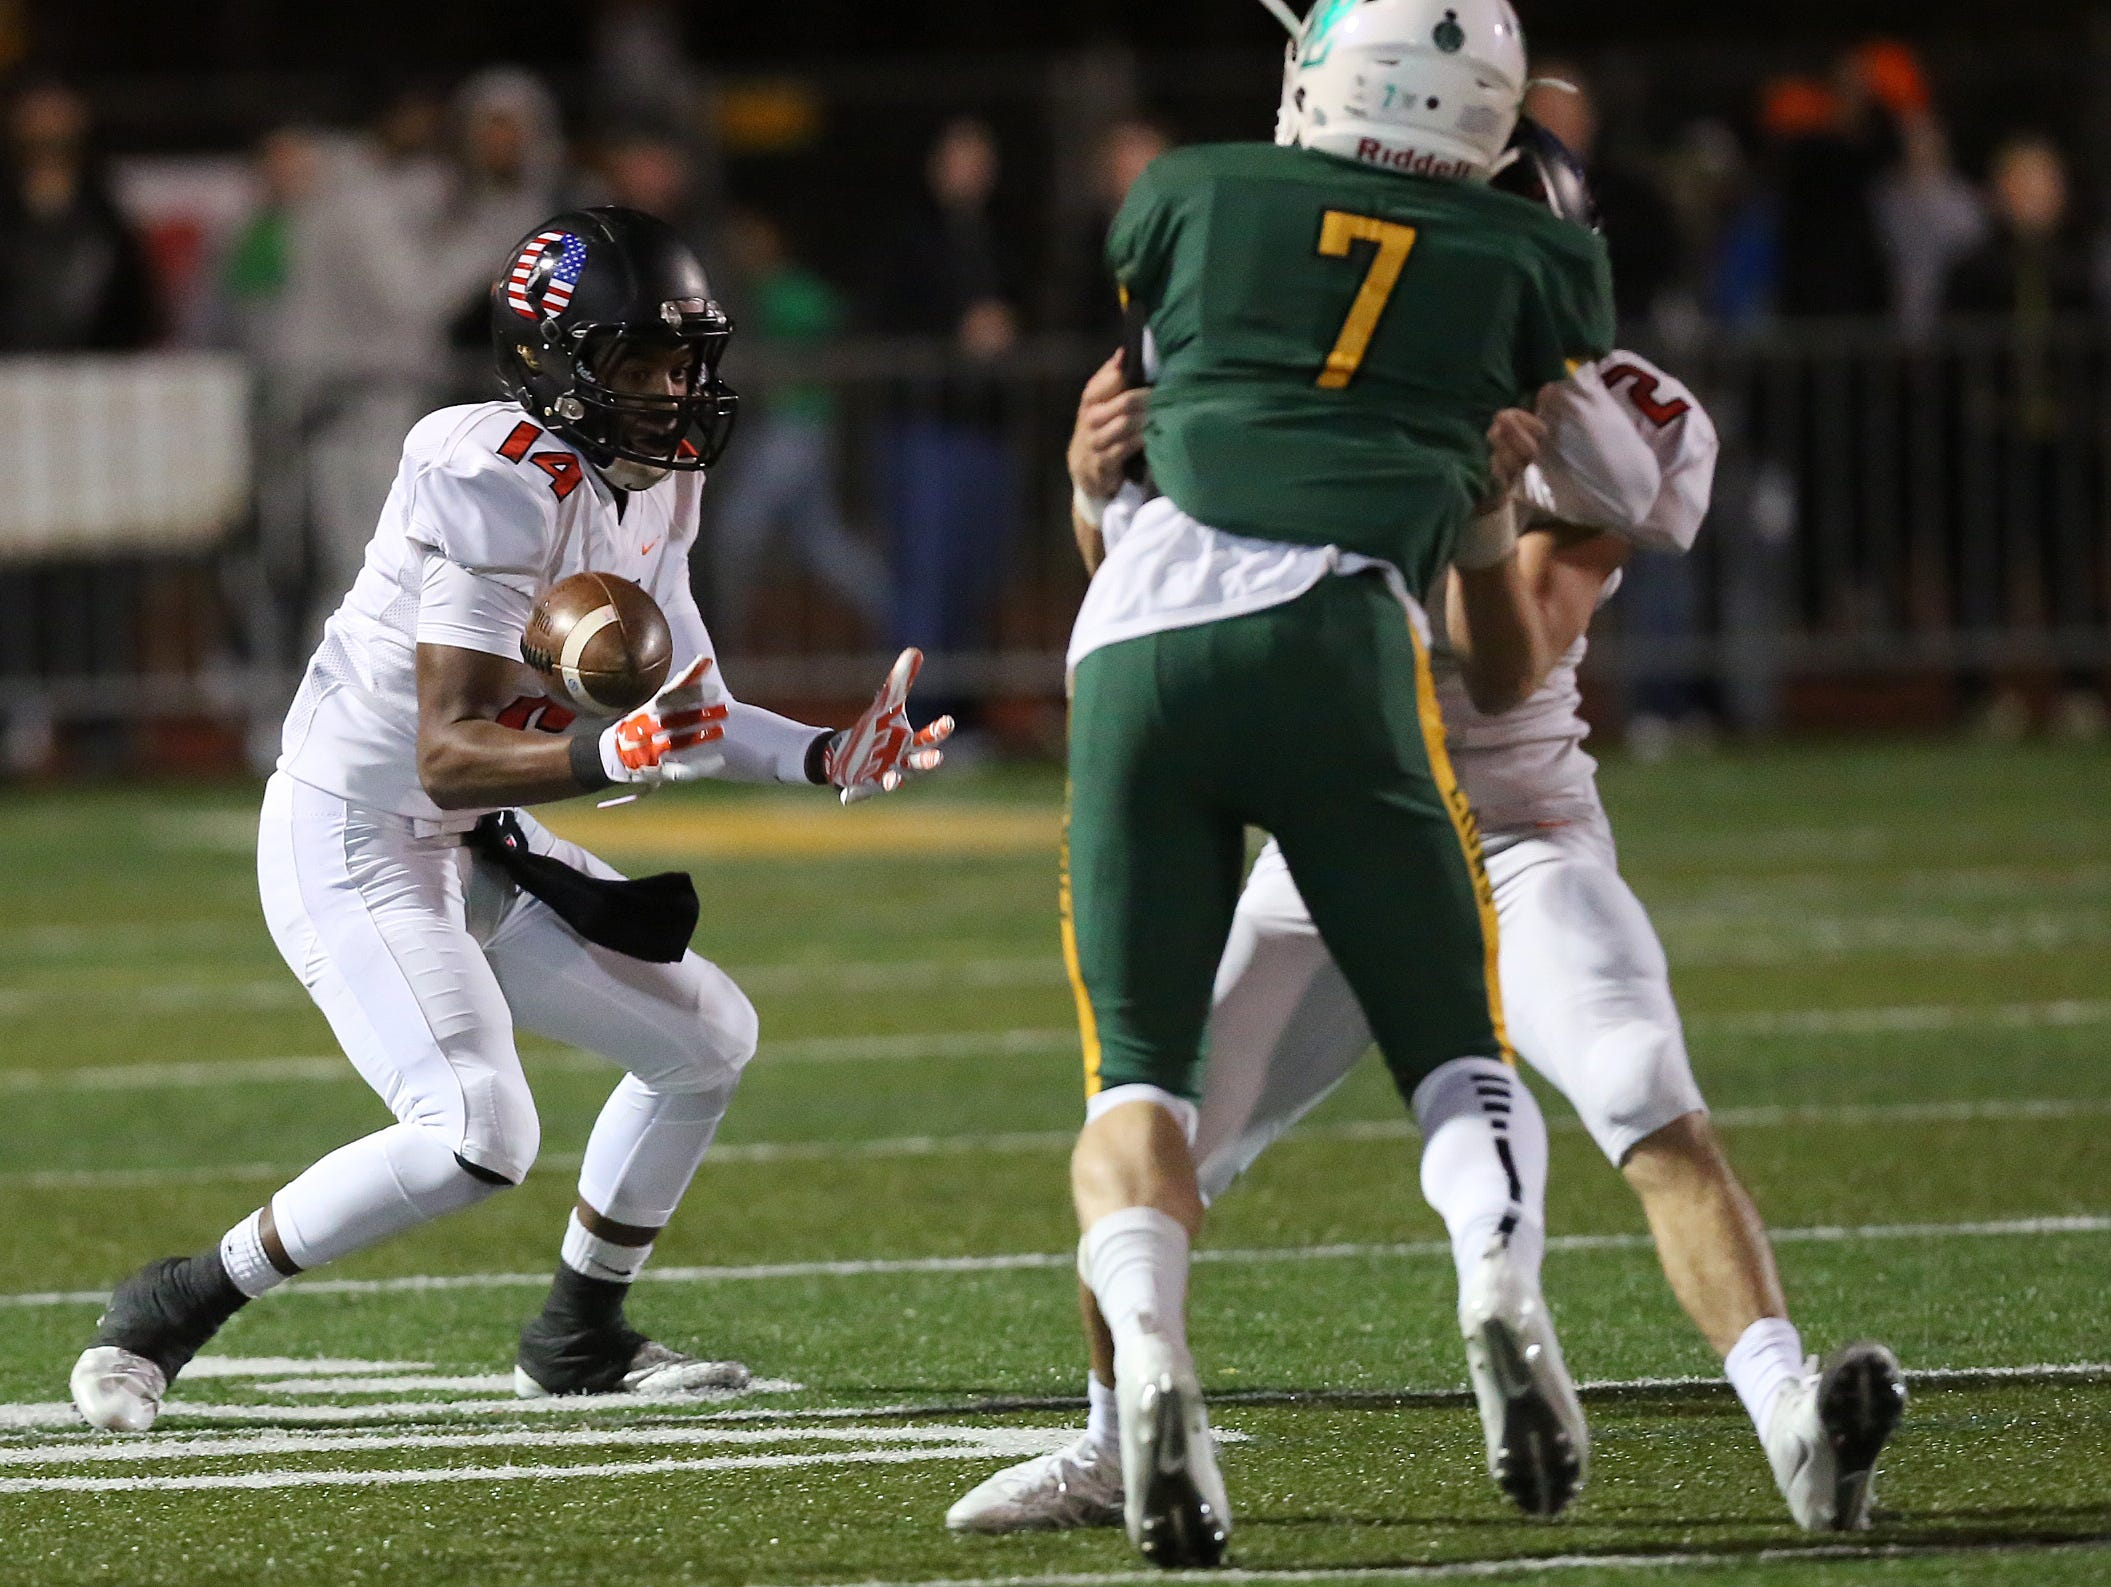 Sprague's Jailen Hammer and the Olys fall to West Linn 56-20 in the OSAA Class 6A state quarterfinals on Friday, Nov. 18, 2016, at West Linn High School.